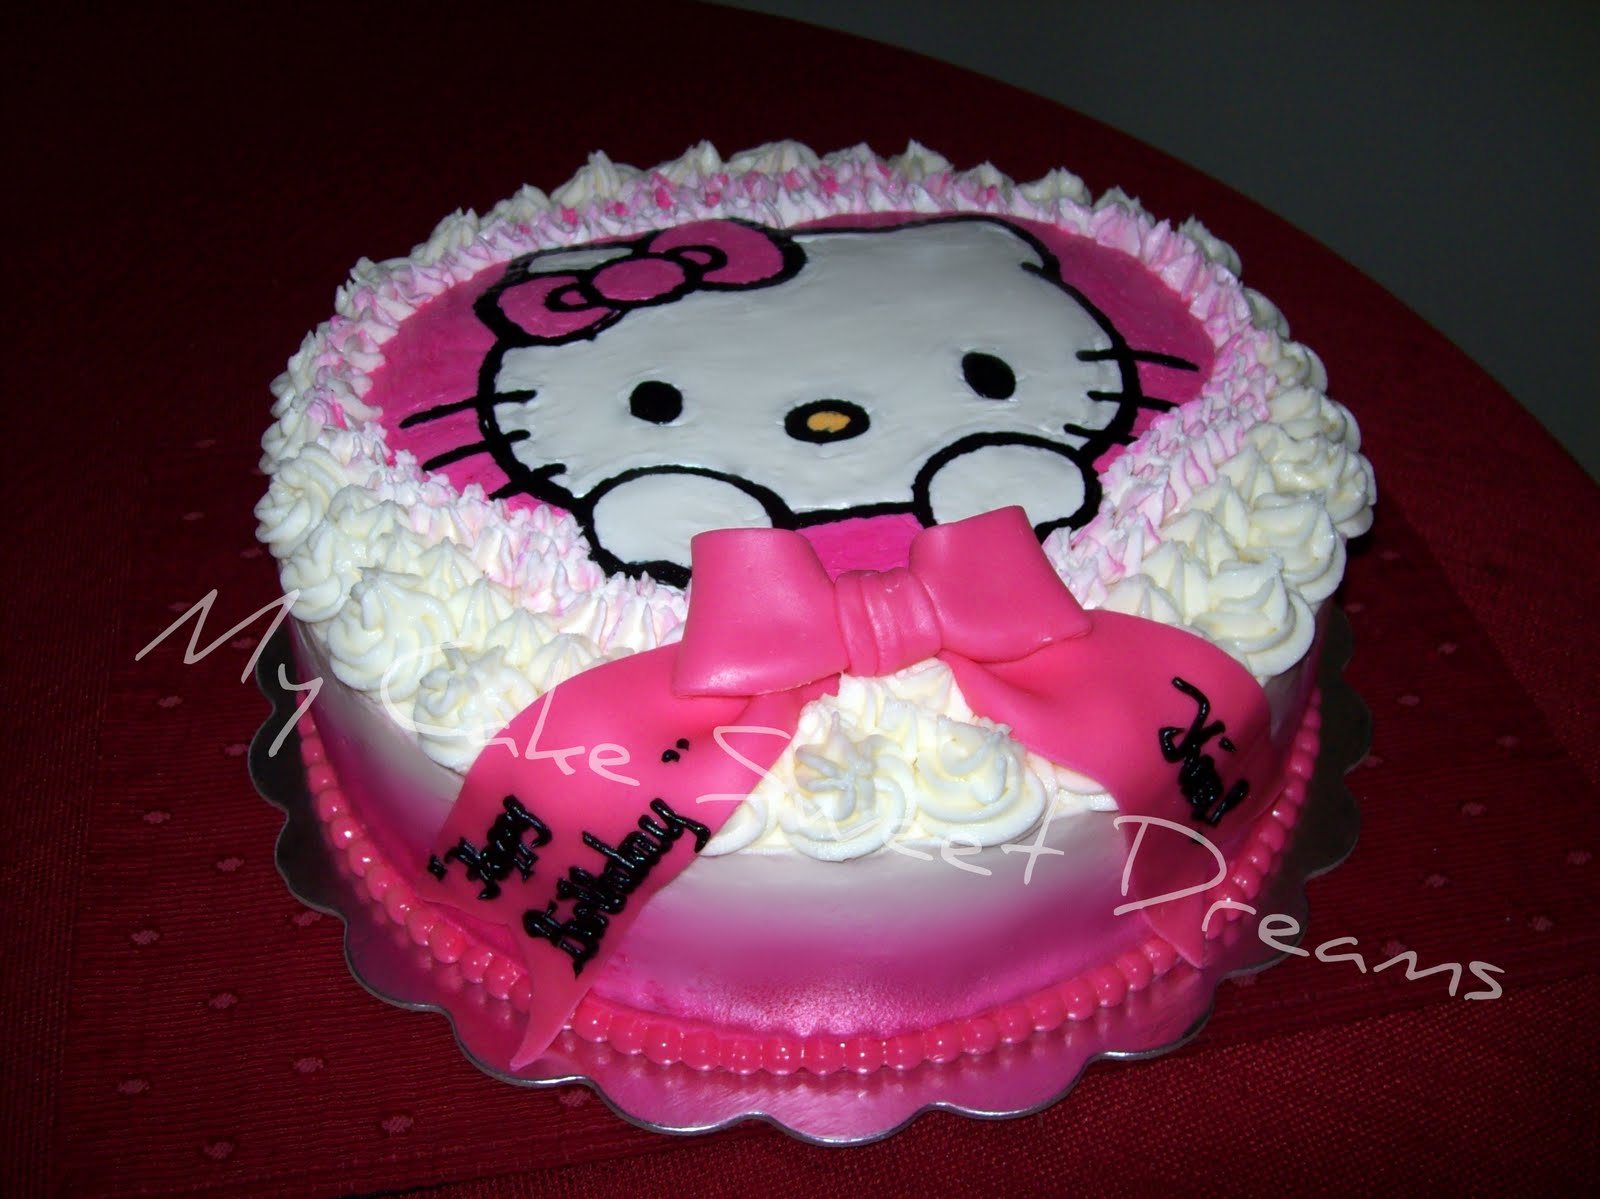 My Cake Sweet Dreams Hello Kitty Cake